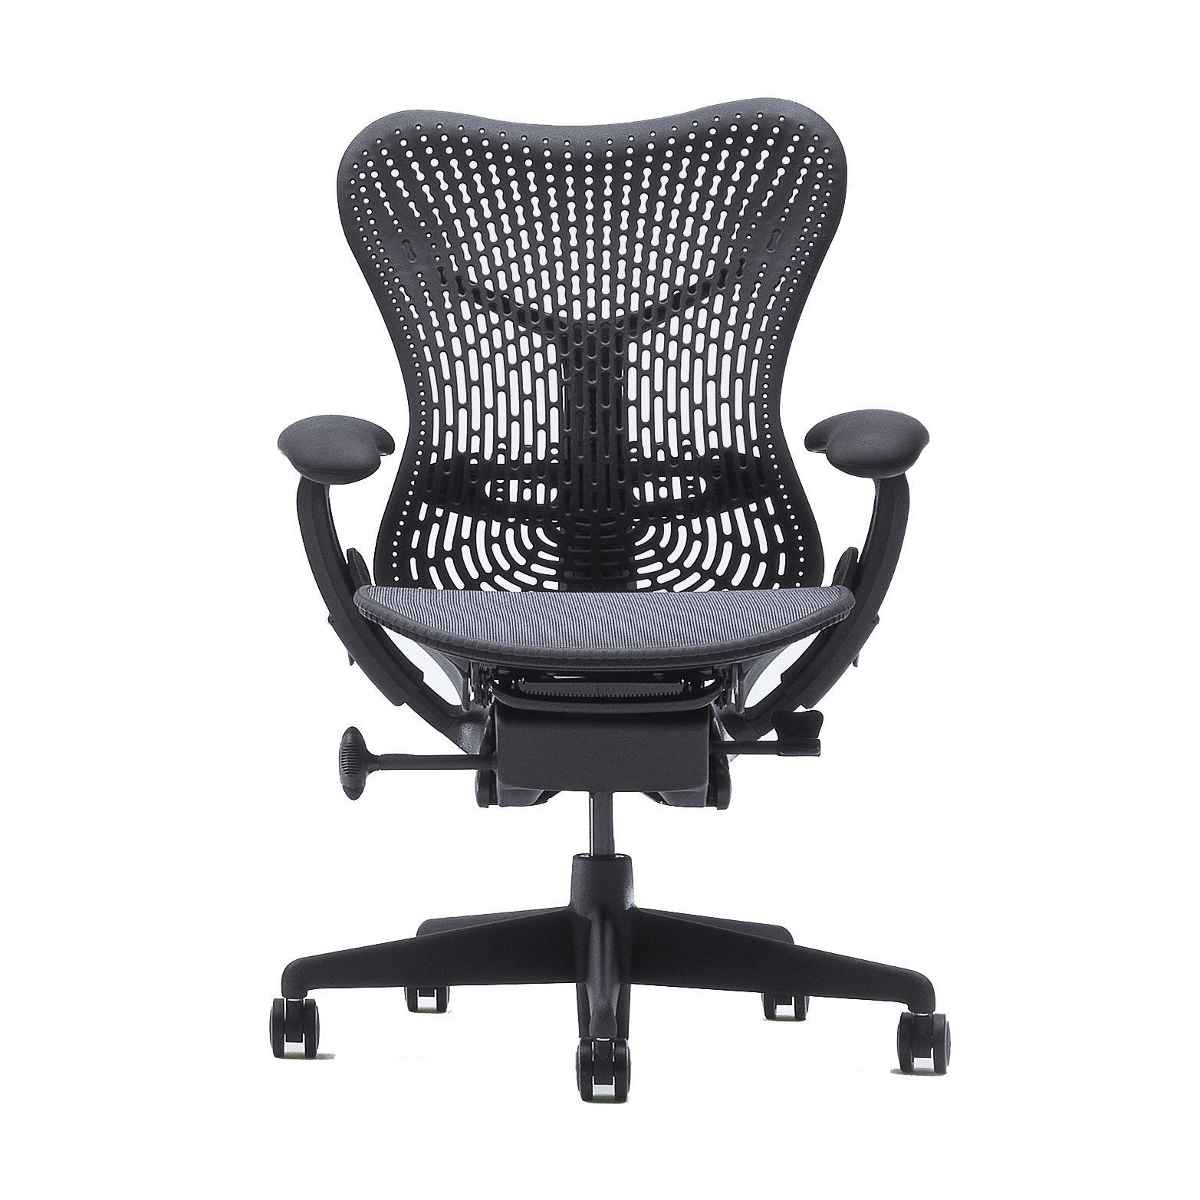 Mirra mesh office computer chair from Herman Miller